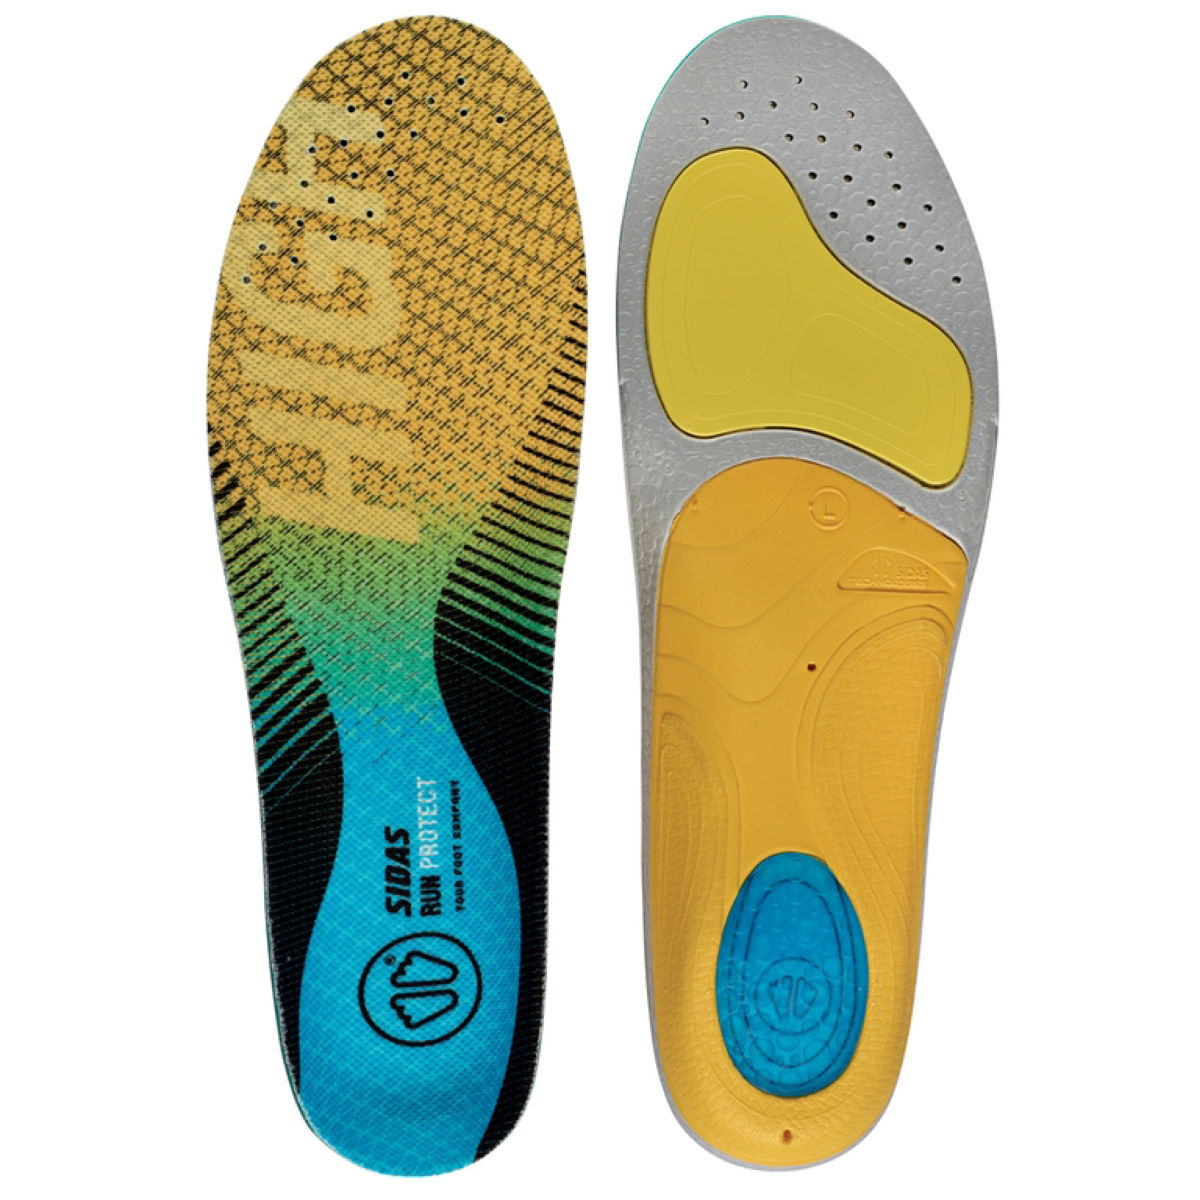 Sidas 3 Feet Hi Arch Run Protect Insole - Plantillas